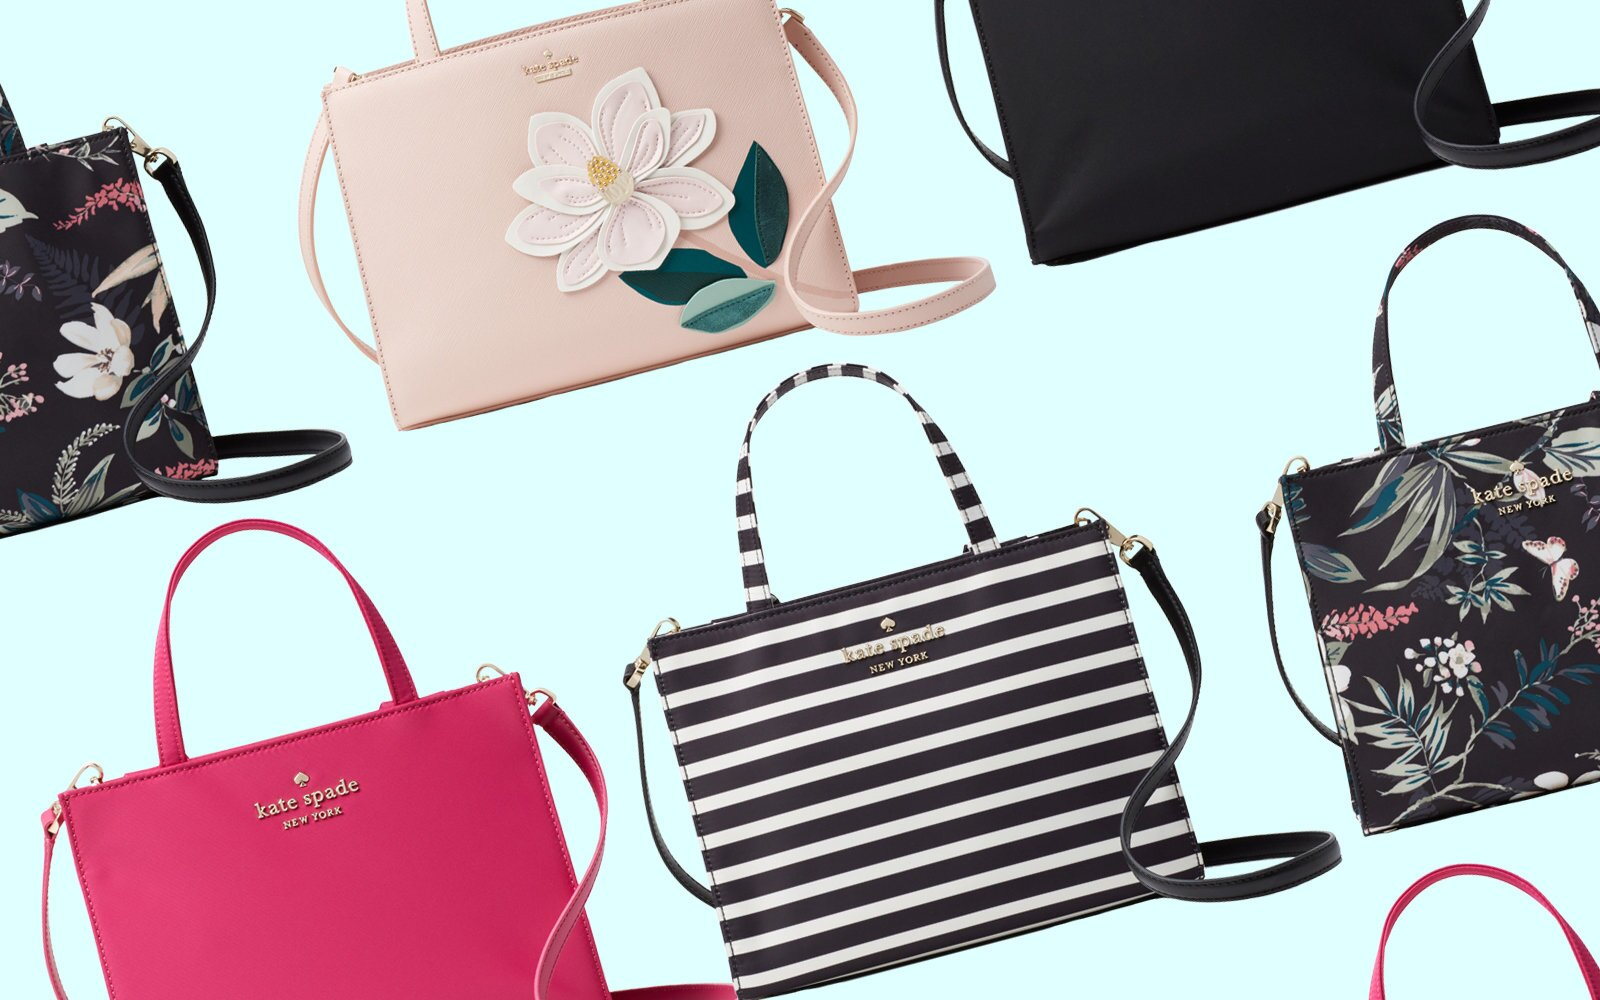 70ef7b282 Kate Spade's Most Iconic '90s Bag Is Finally Back | Travel + Leisure